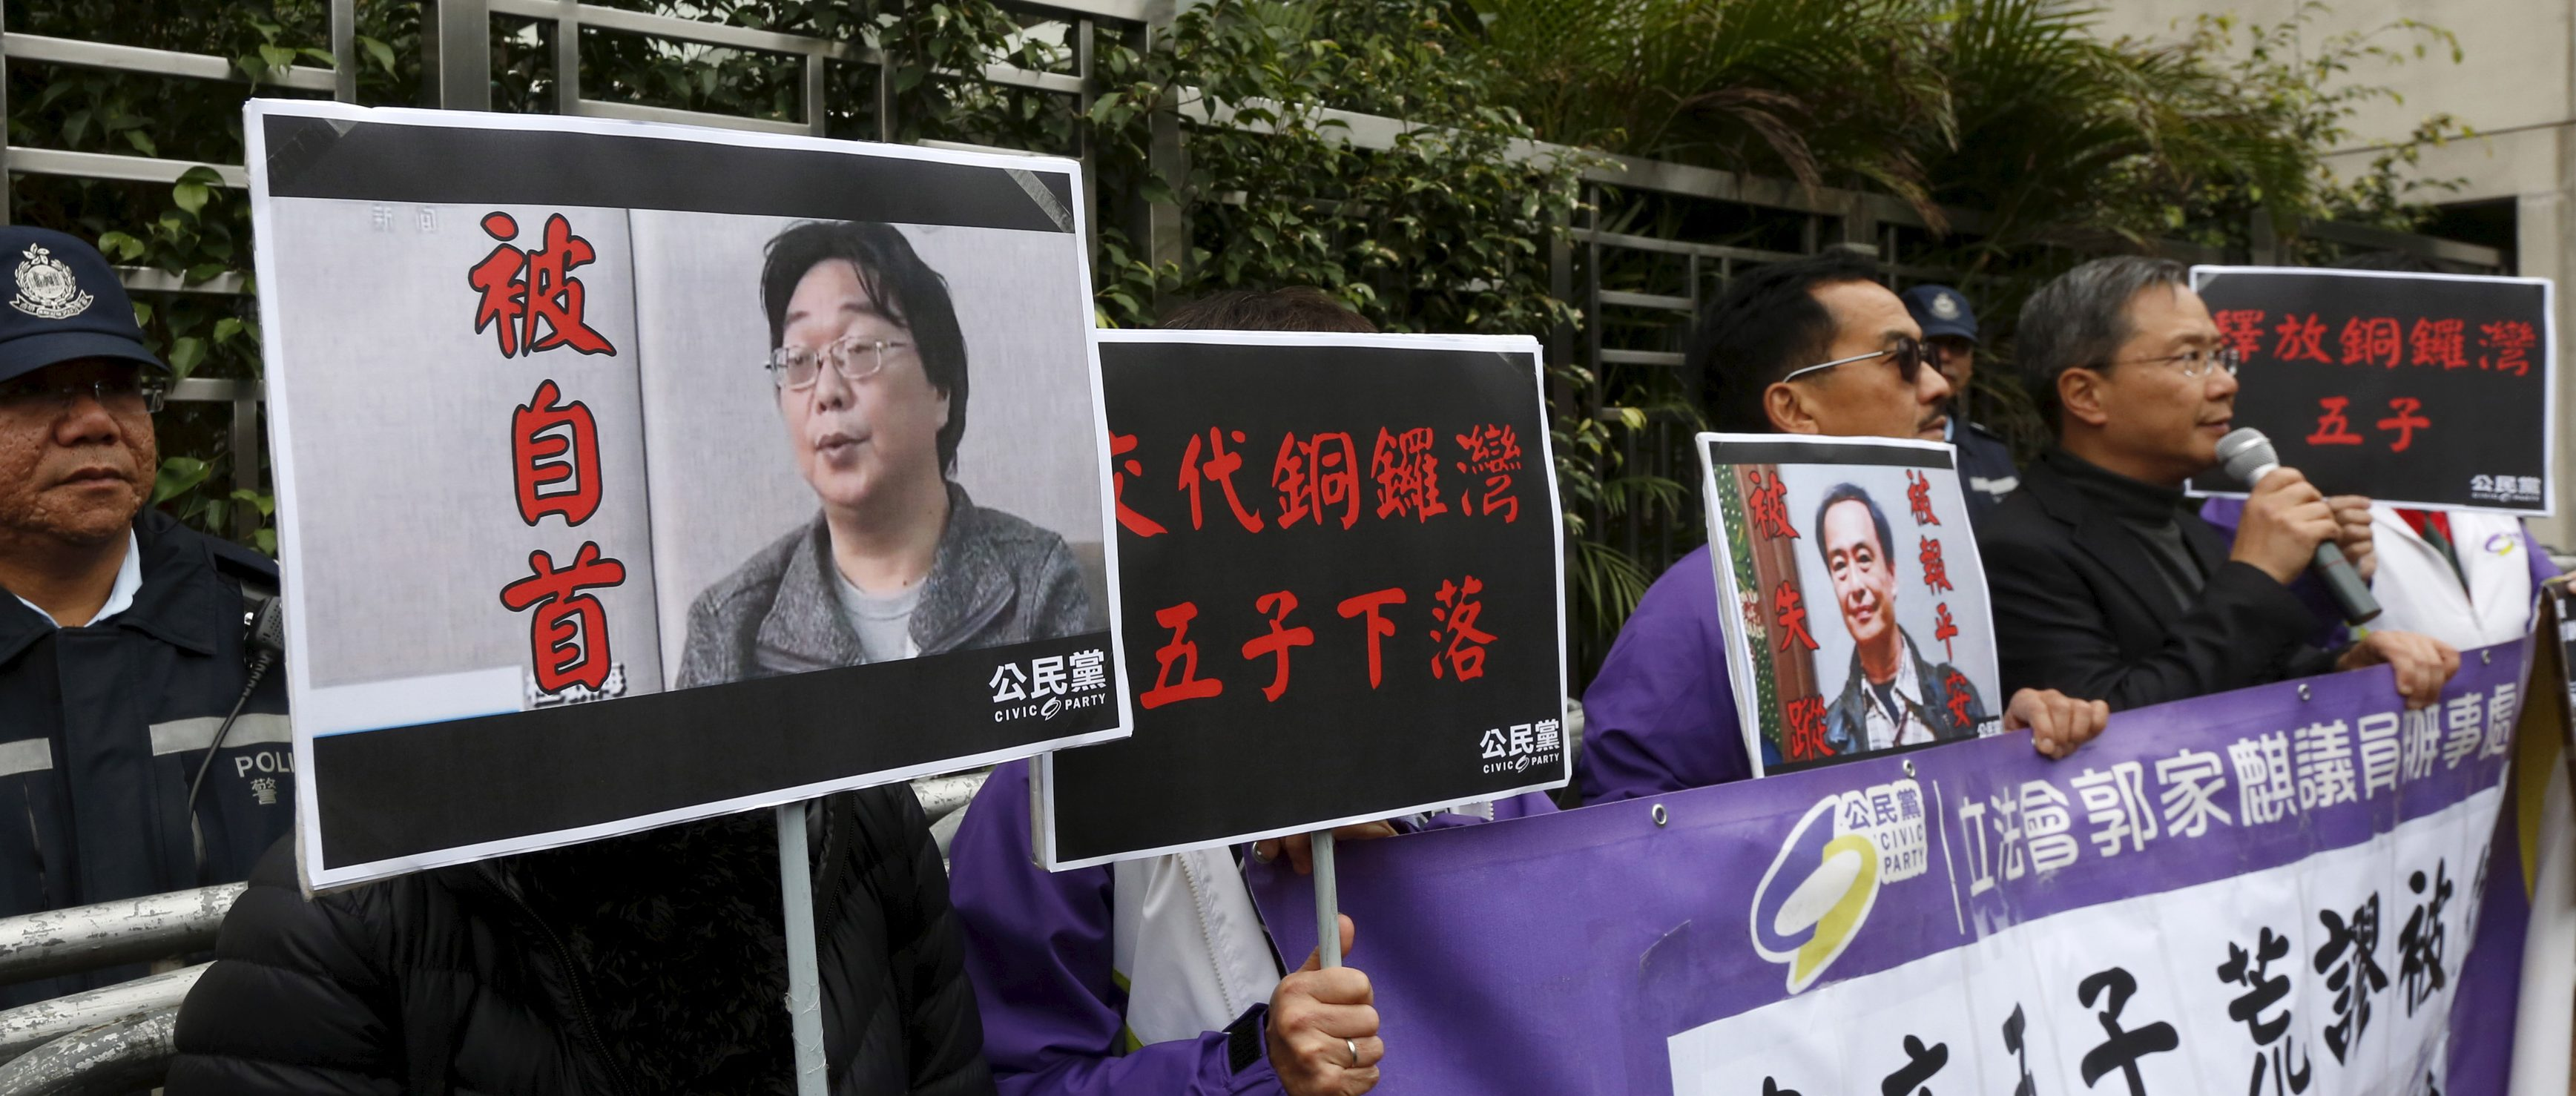 Members from the pro-democracy Civic Party carry a portrait of Gui Minhai and Lee Bo during a protest outside the Chinese Liaison Office in Hong Kong